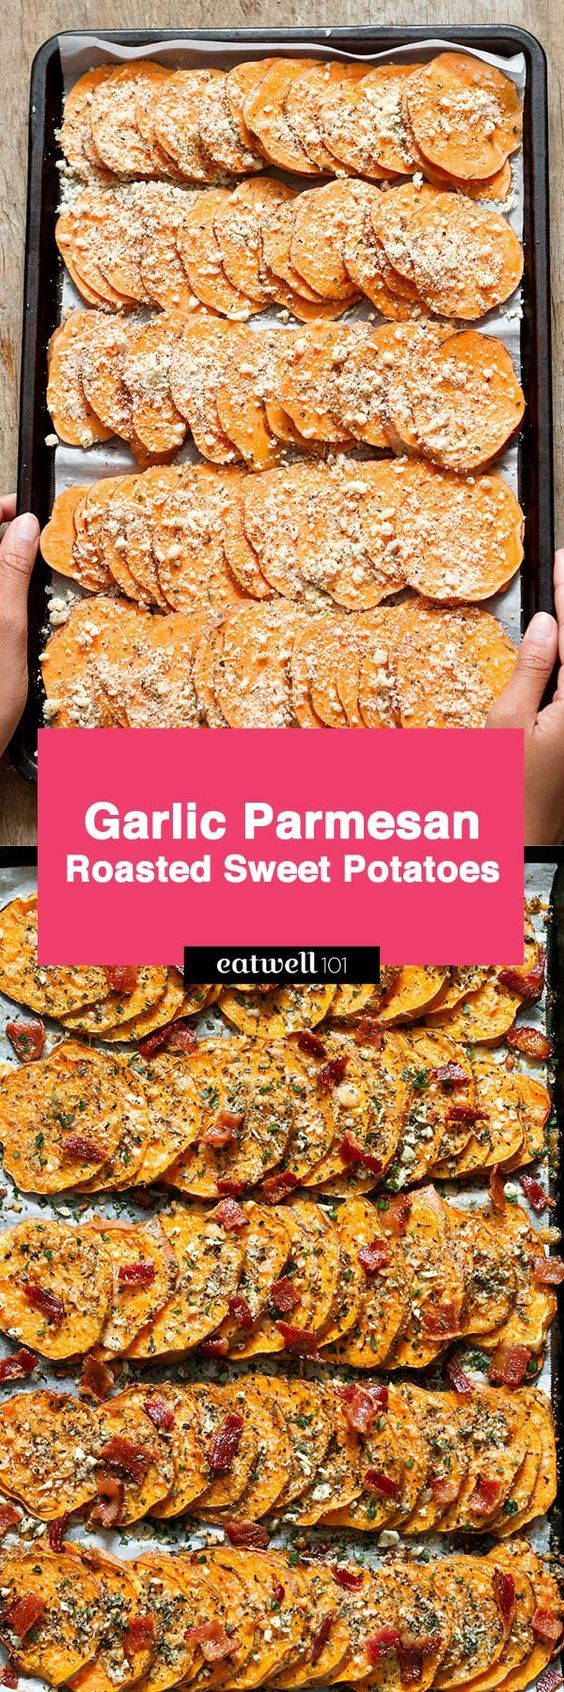 These roasted sweet potatoes are definitely on the savory side and you're going to love them! Tossed with a mix of parmesan, butter, Italian herbs, and fresh cracked pepper, they're top…